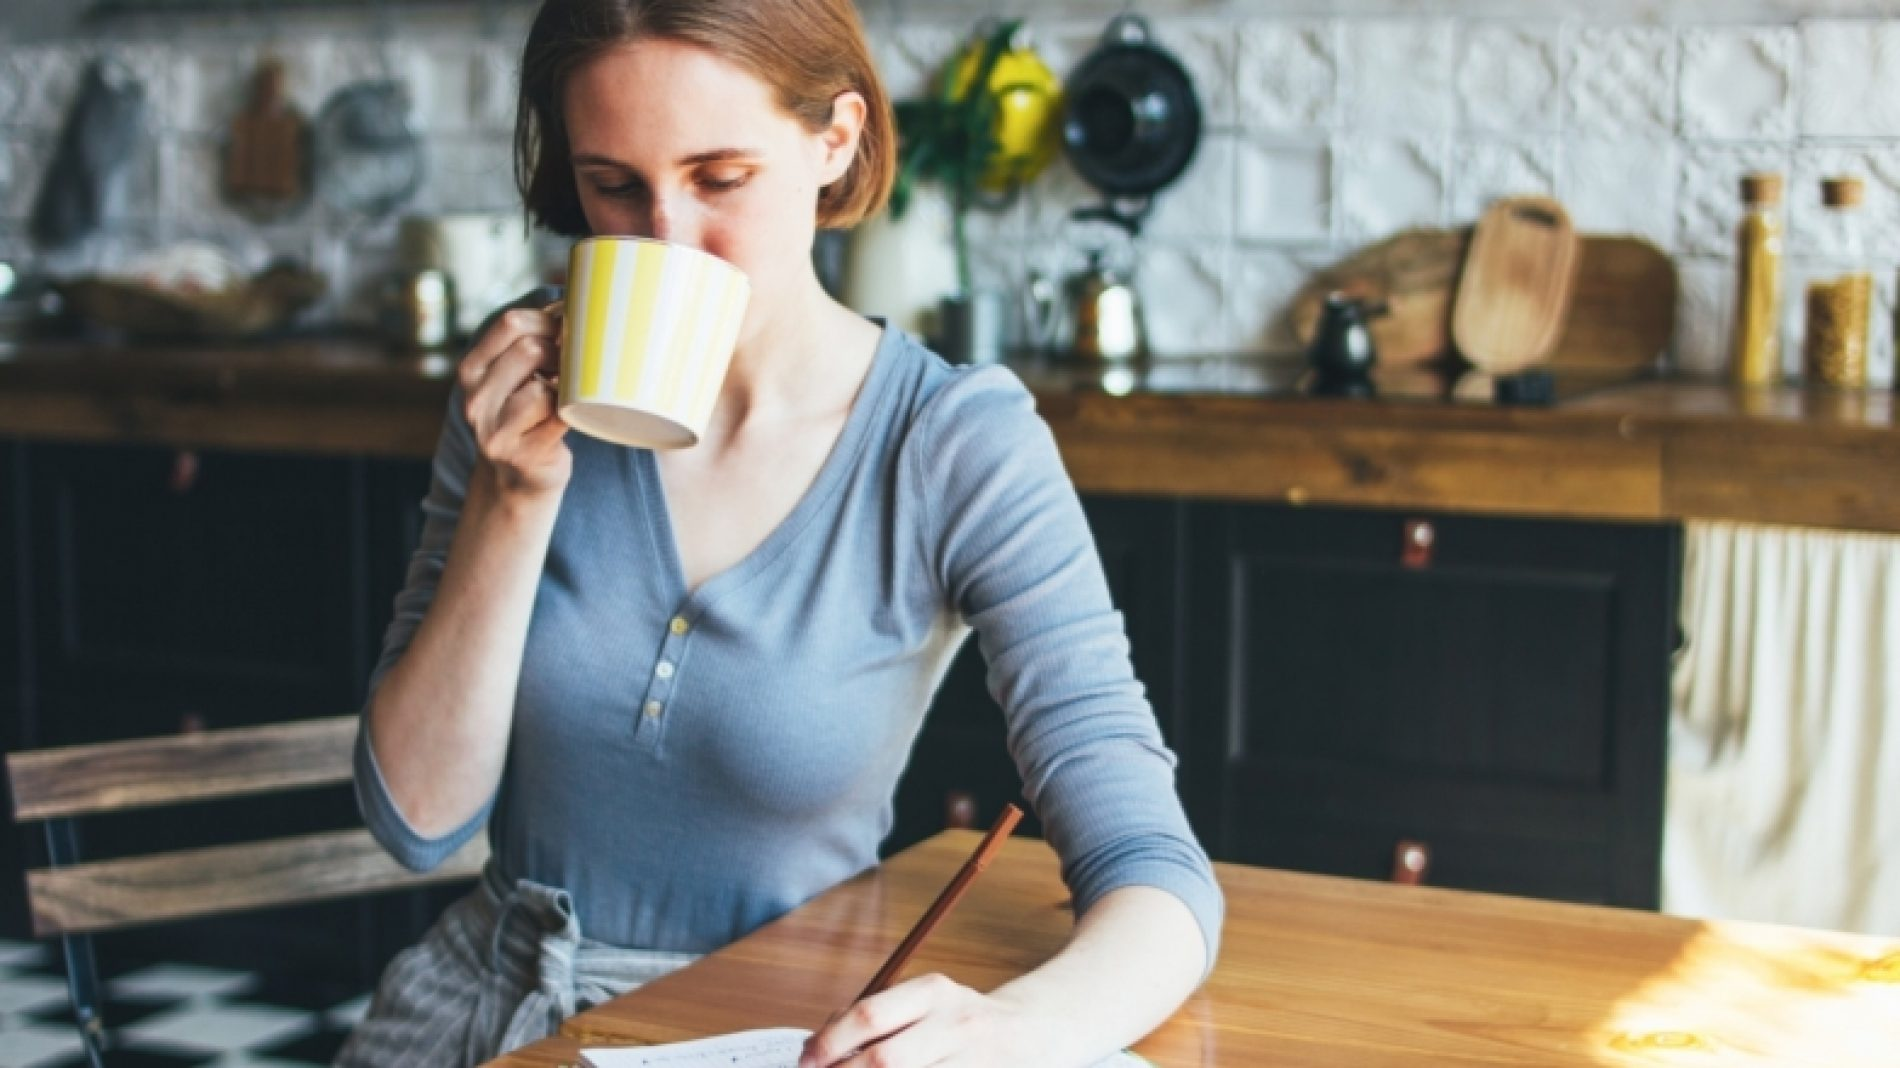 Young-person-journaling-and-drinking-tea-bcAQvd